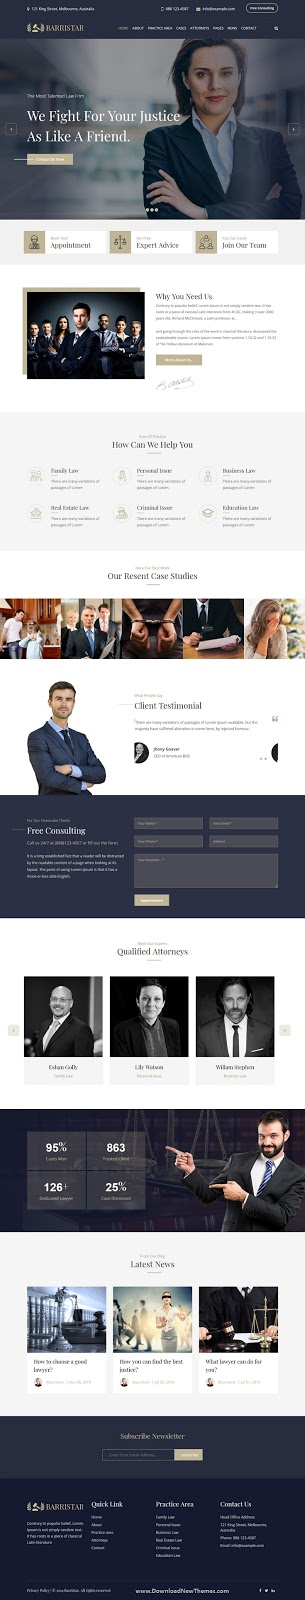 Lawyers Attorneys and Law Firm Theme